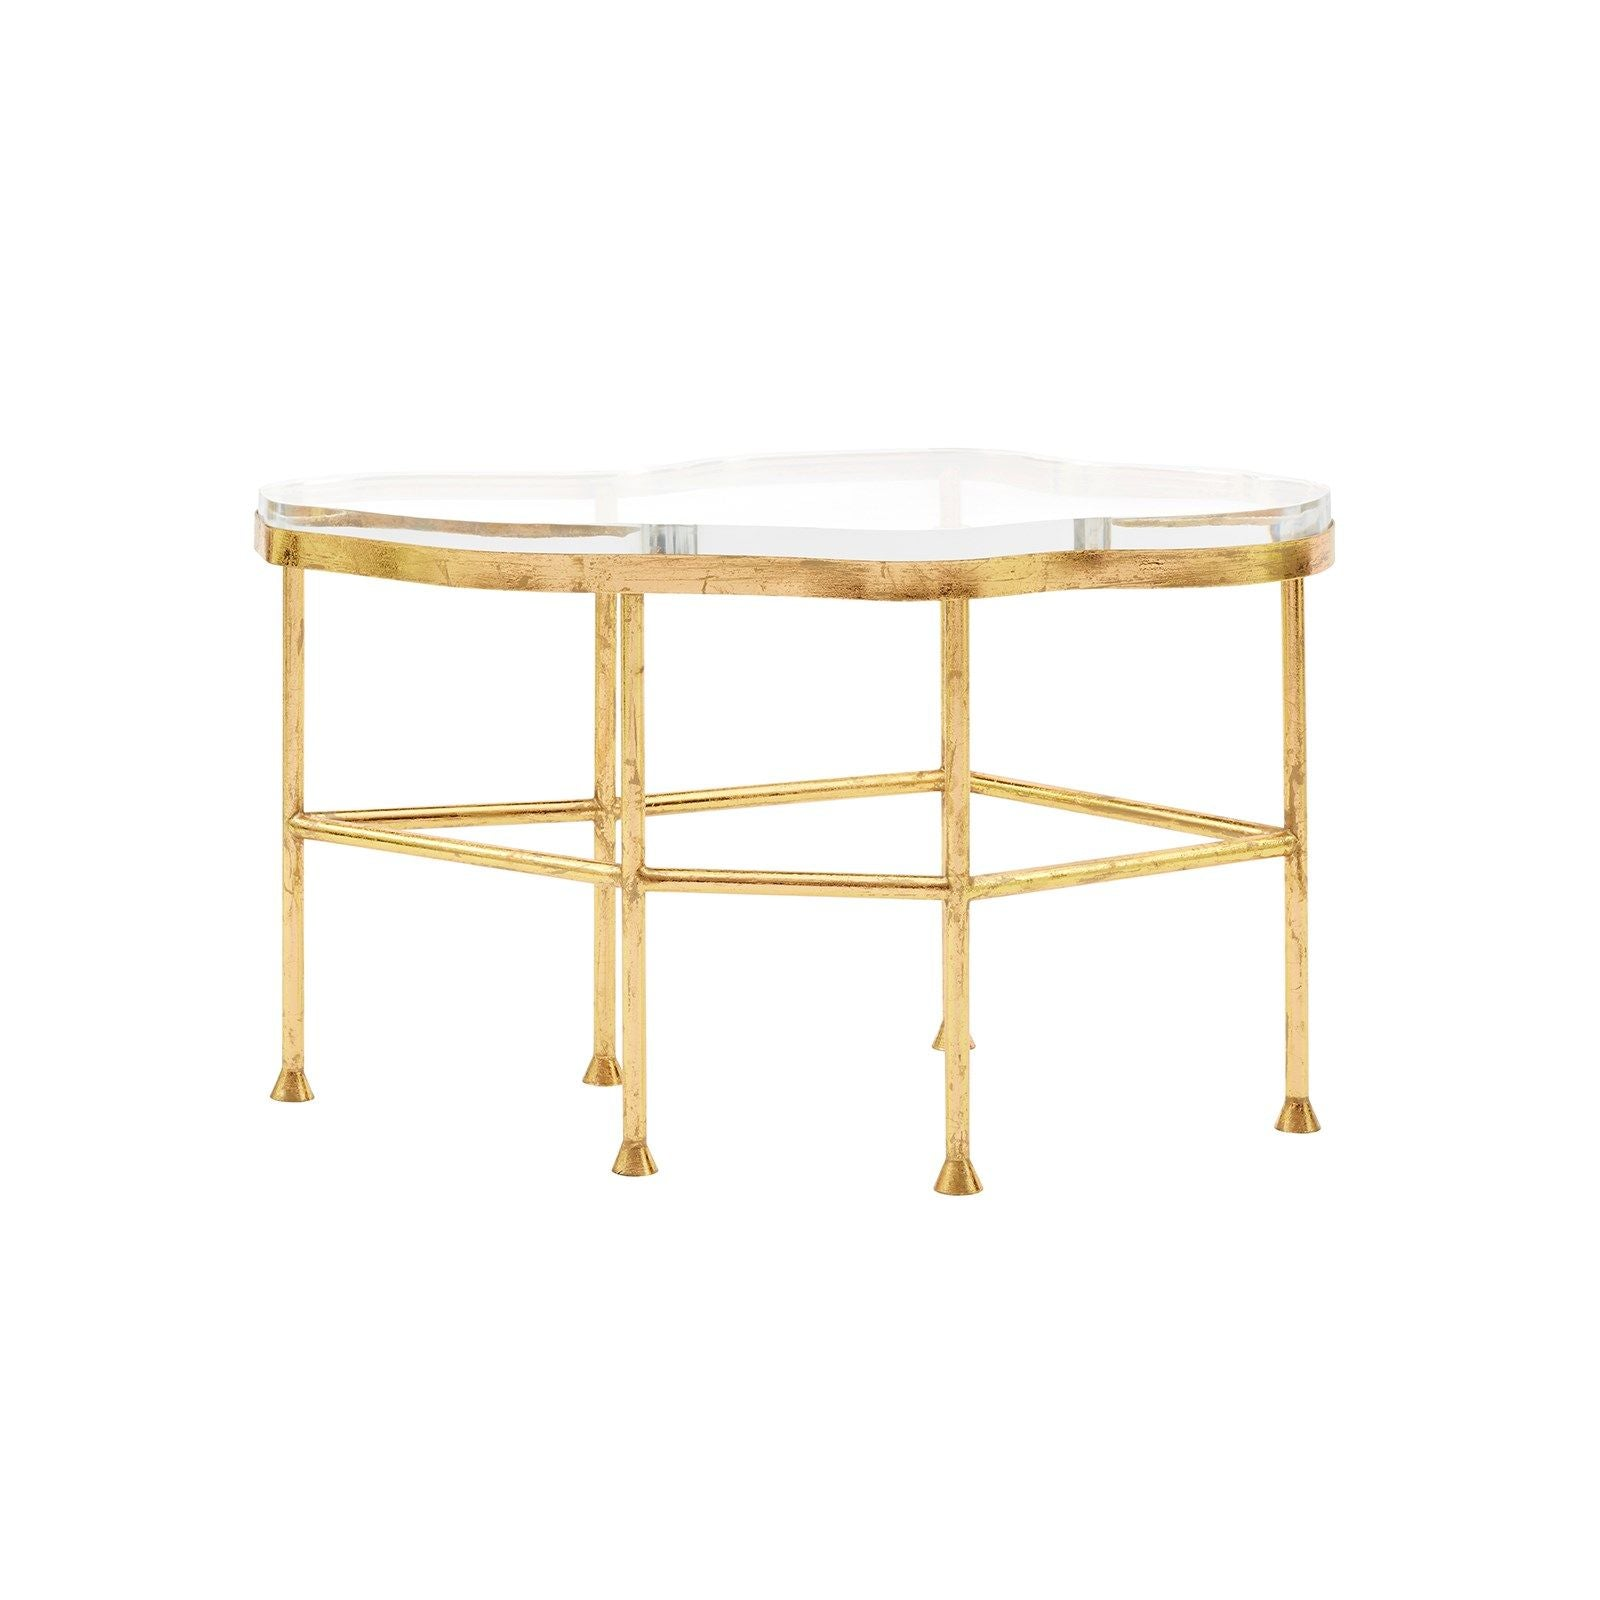 Bungalow 5 - CRISTAL COFFEE TABLE, GOLD